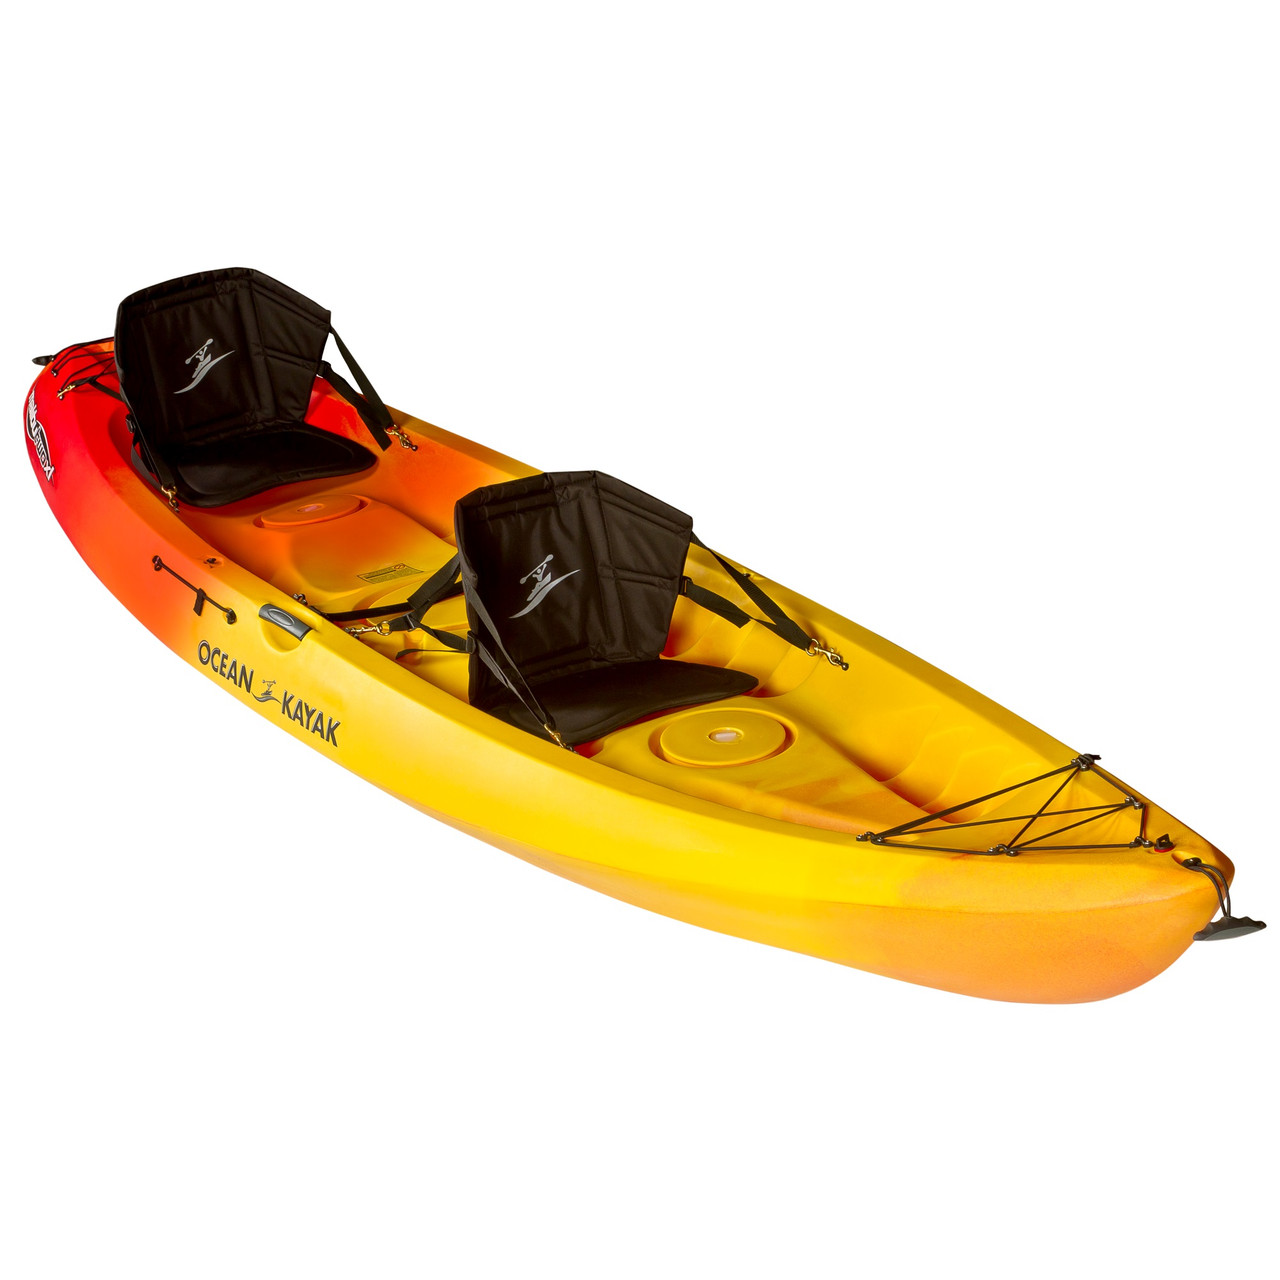 Ocean Kayak Malibu Two XL sun